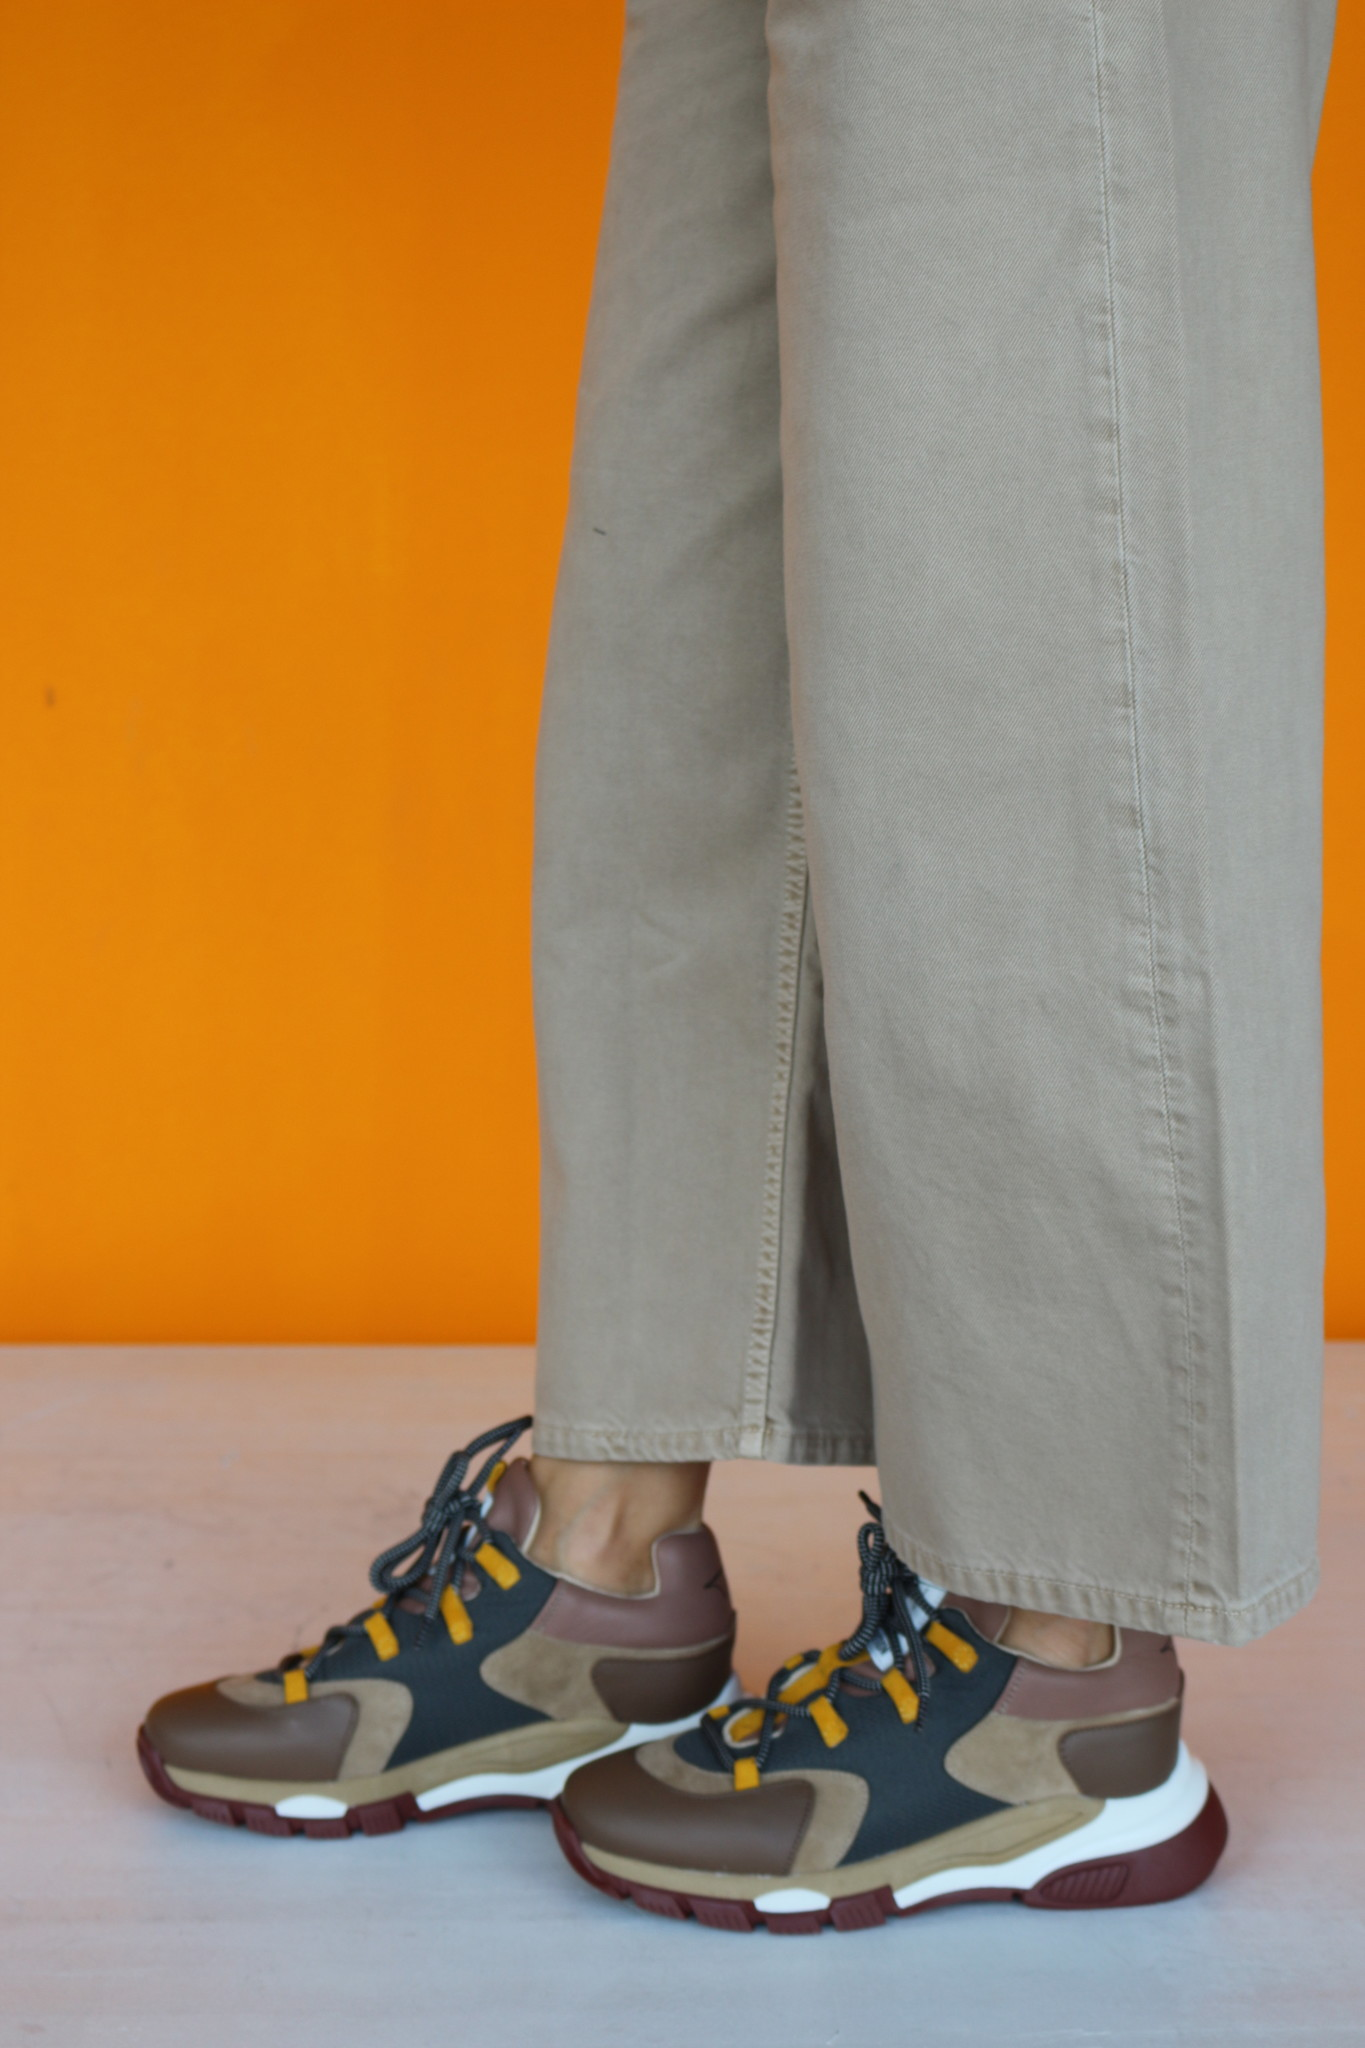 TORAL SNEAKERS FROM TORAL